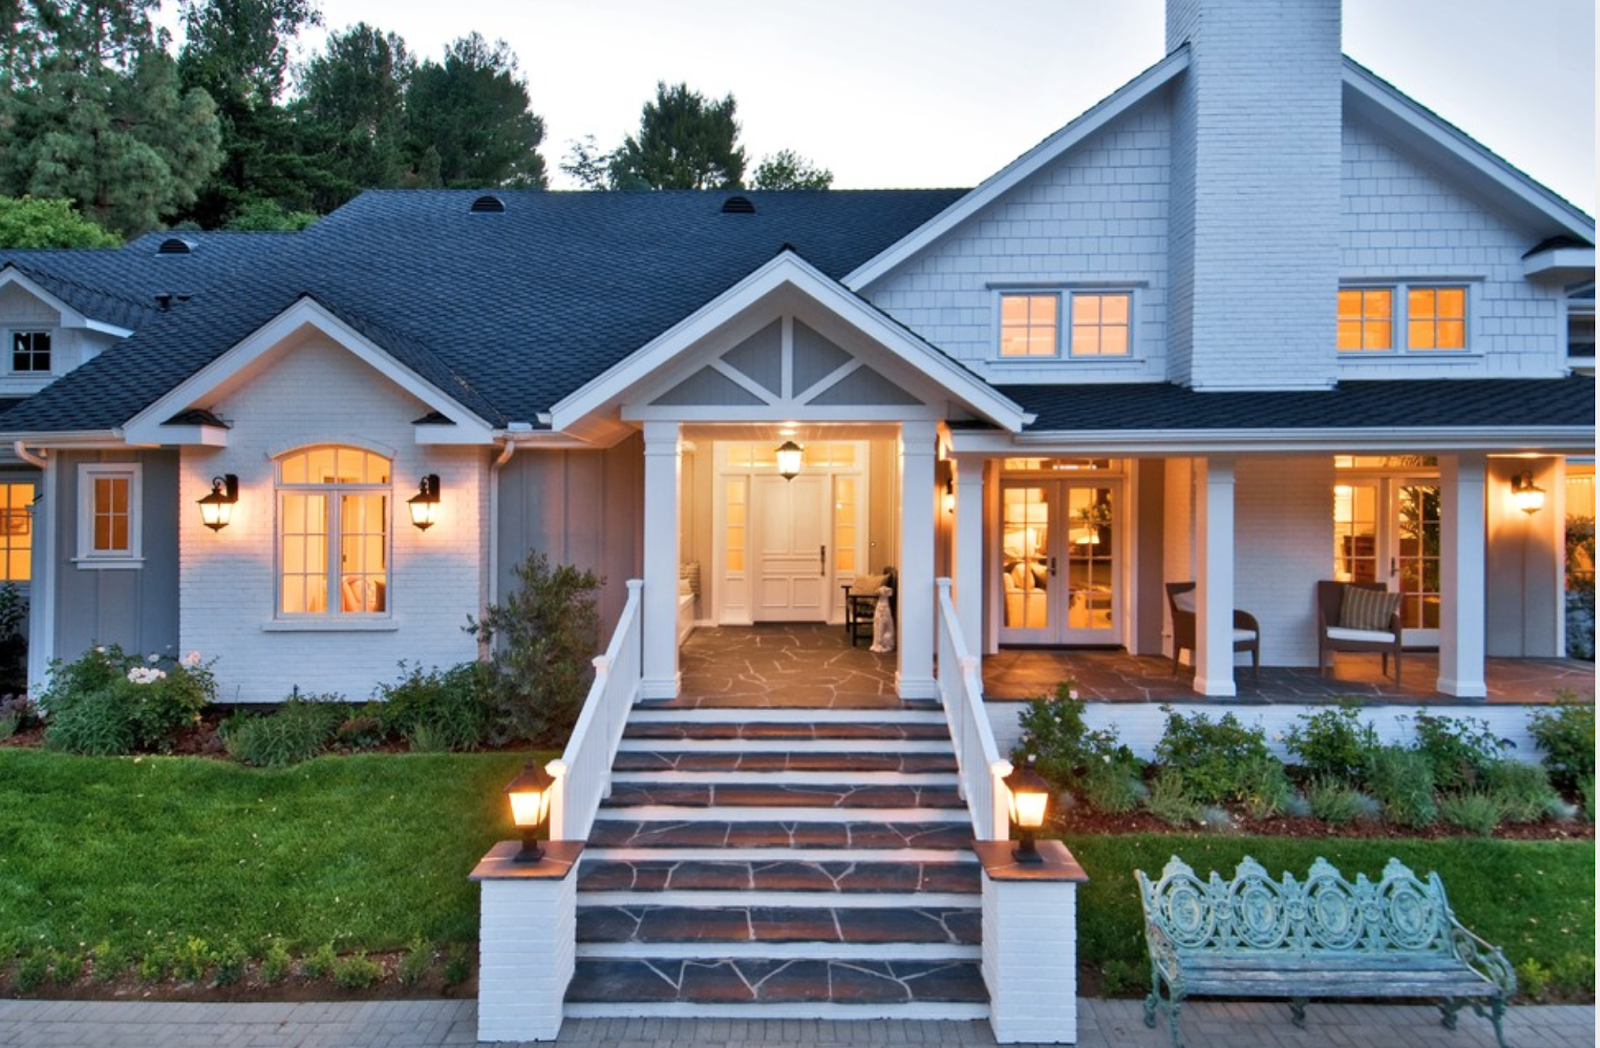 Top 9 Exterior Remodels That Require A Site Plan To Get A